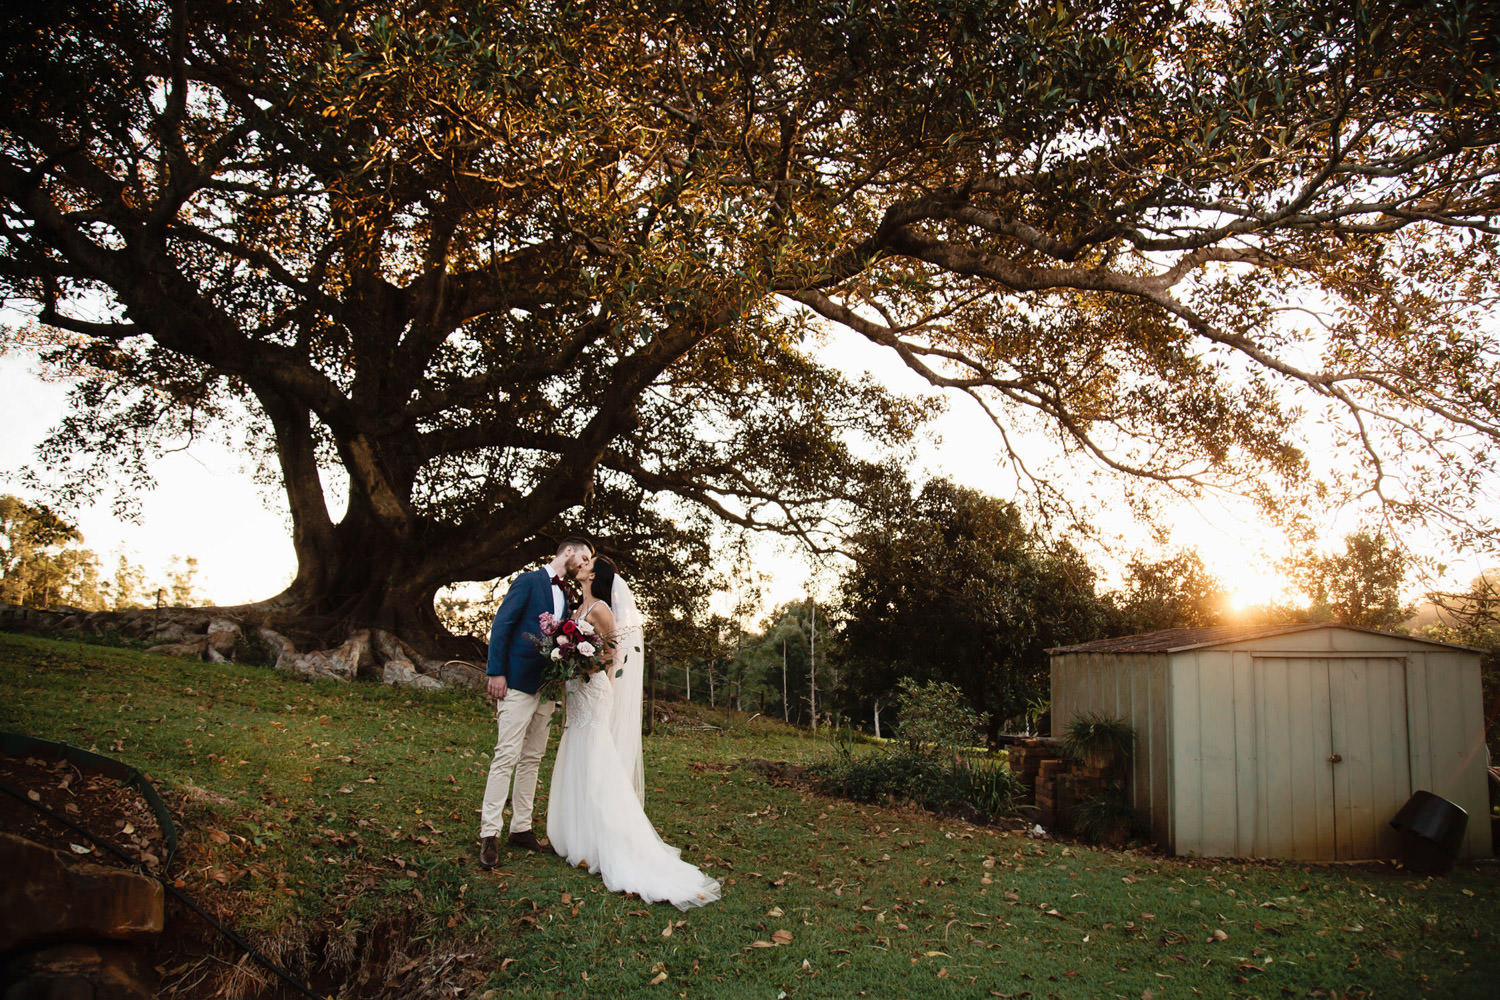 figtree-sunset-Brides-wedding-dress-Romantic-privateproperty-wedding-Byron-bay-QuinceandMulberryStudios